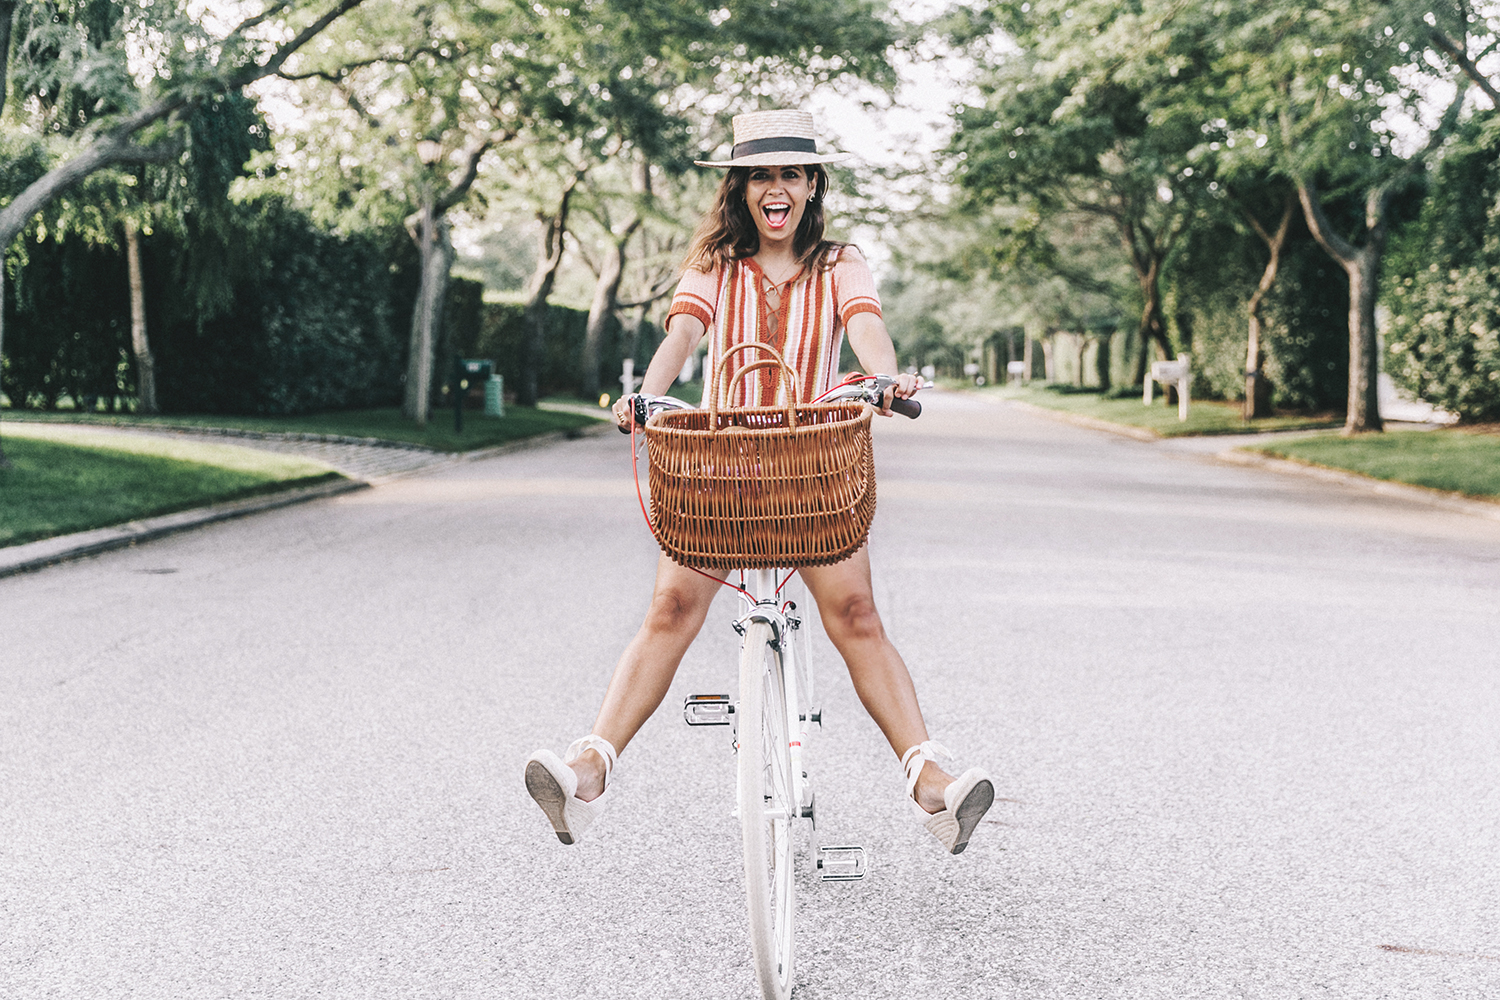 Revolve_in_The_Hamptons-Revolve_Clothing-Collage_Vintage-Free_People_Lace_Dress-Knitted_Dress-Soludos_Espadrilles-Canotier-Hat-Outfit-73